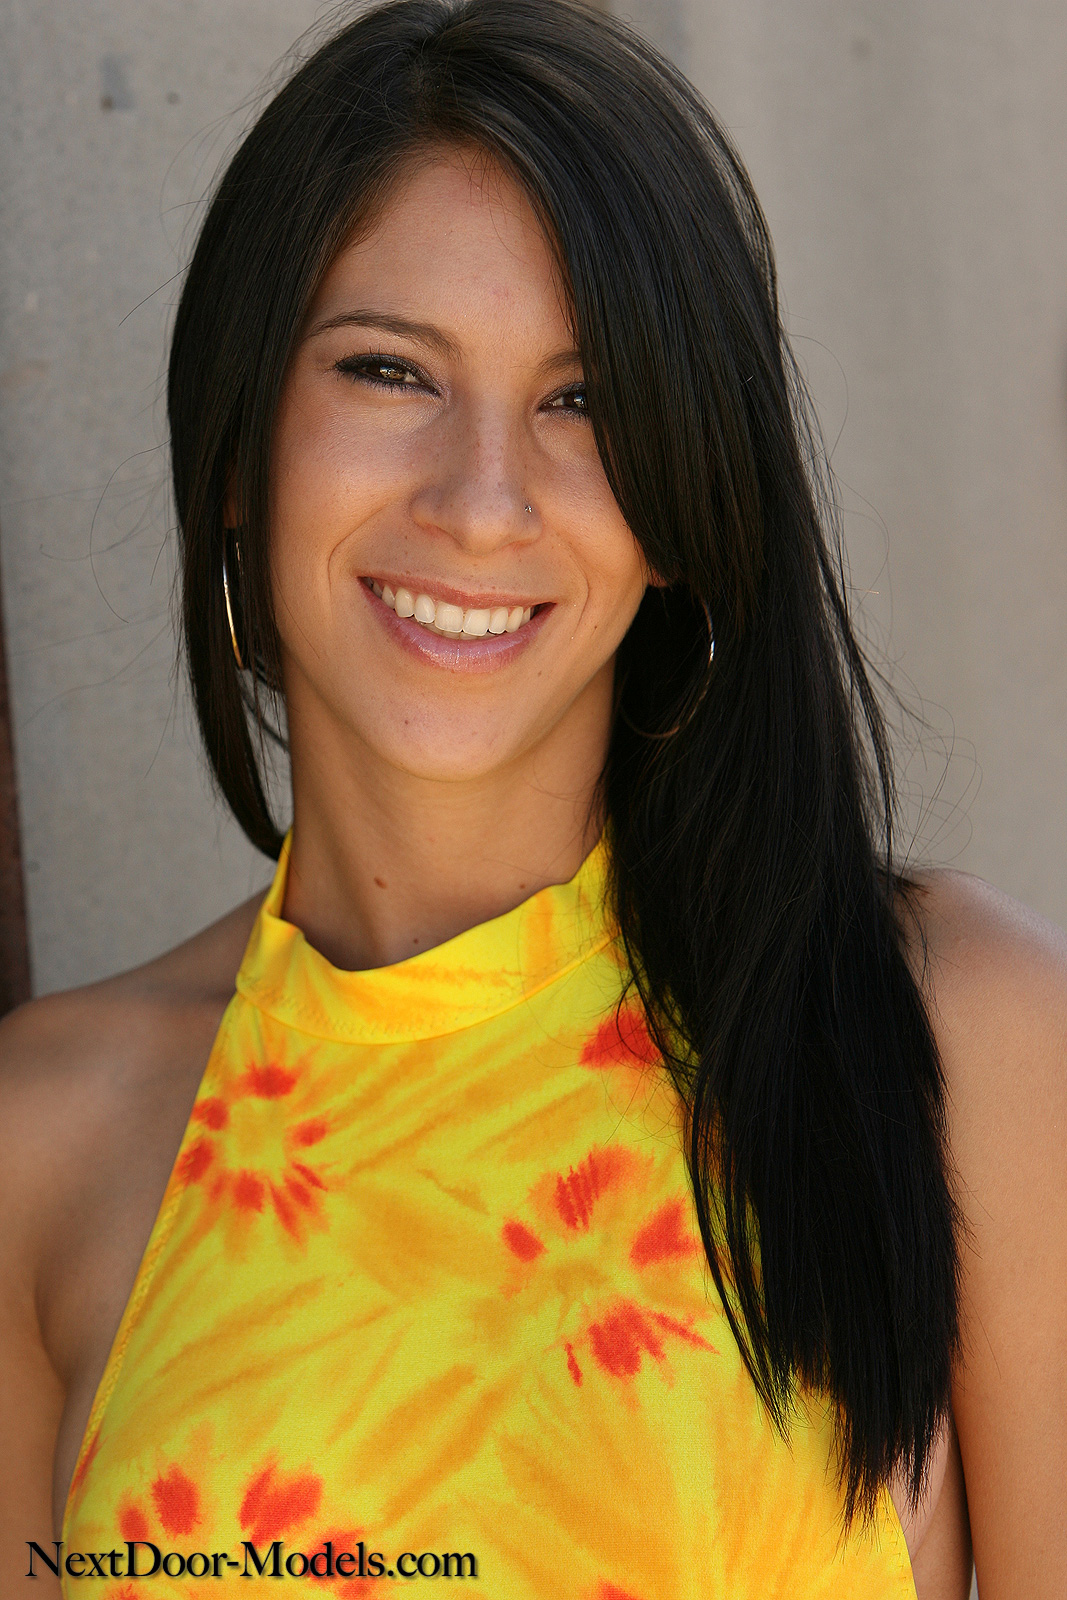 Cassie Channels The Sun Gods In Her Hot Yellow And Orange One Piece - Picture 2